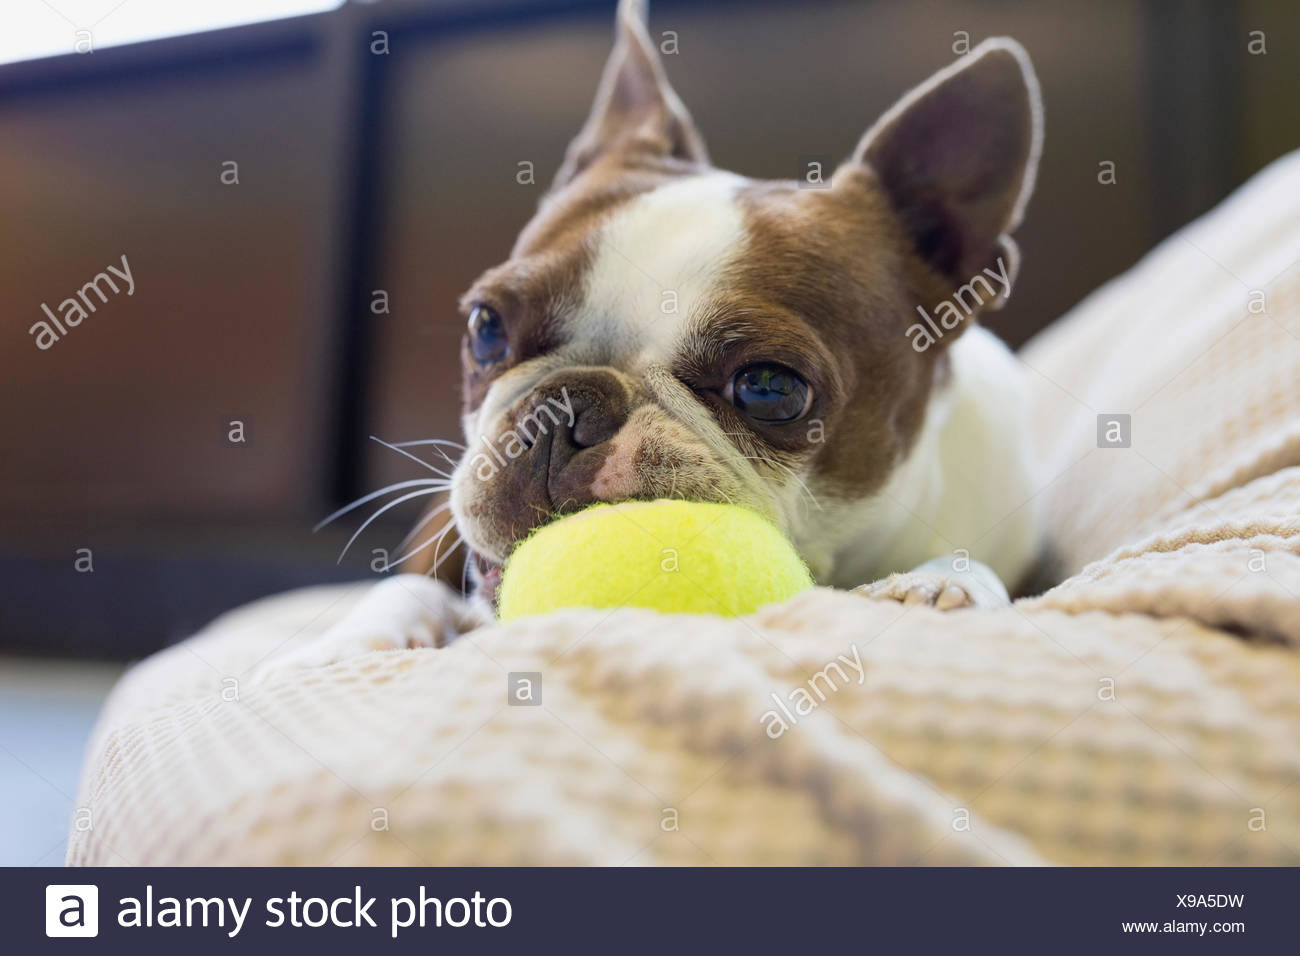 Boston Terrier chewing tennis ball - Stock Image